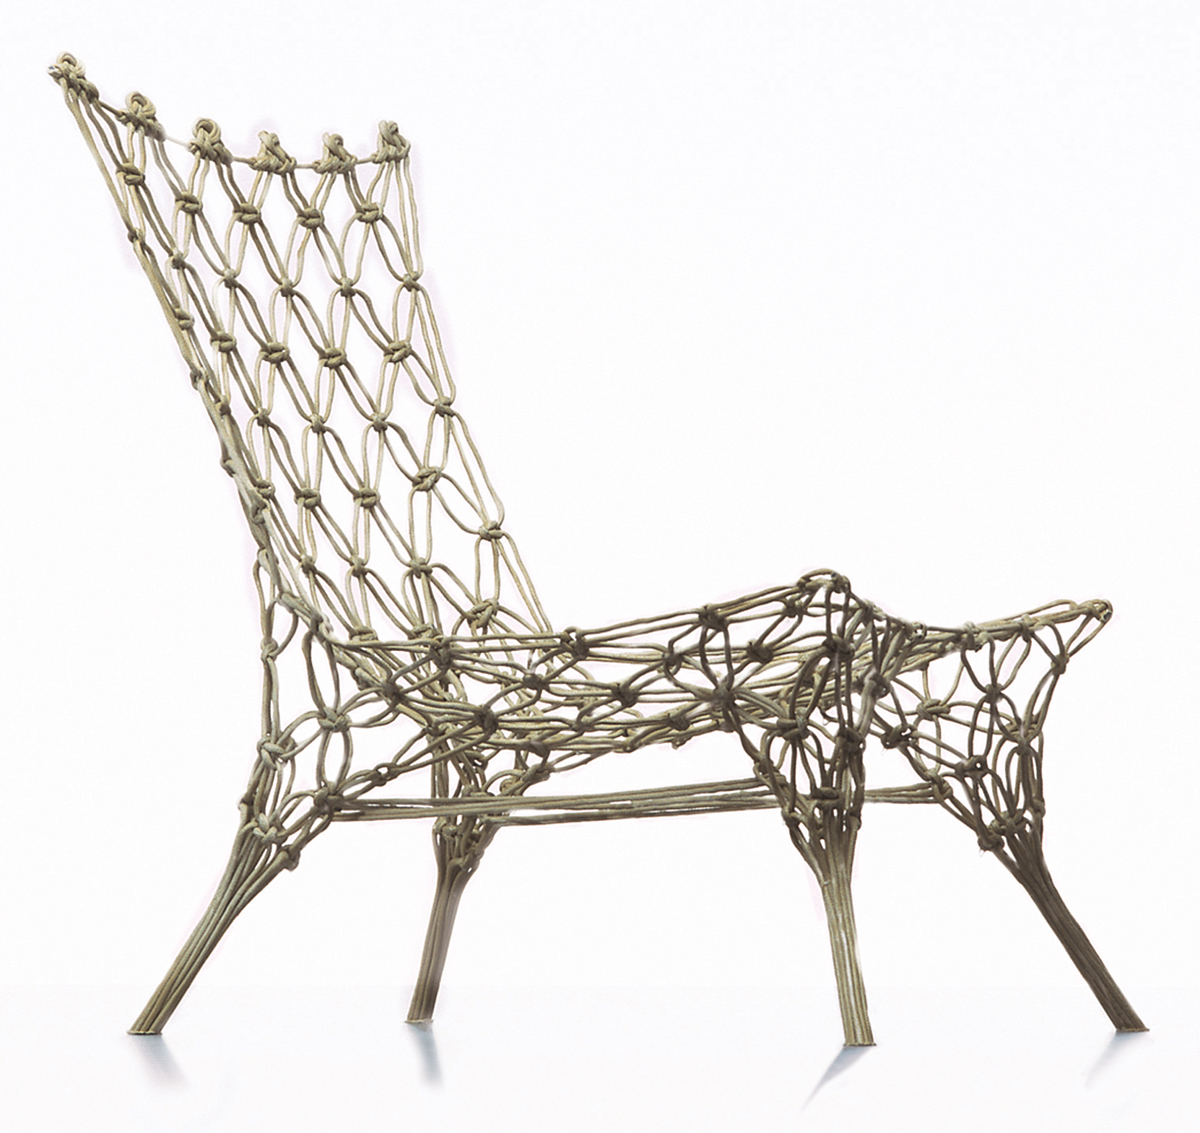 Knotted Chair, Marcel Wanders, 1996.